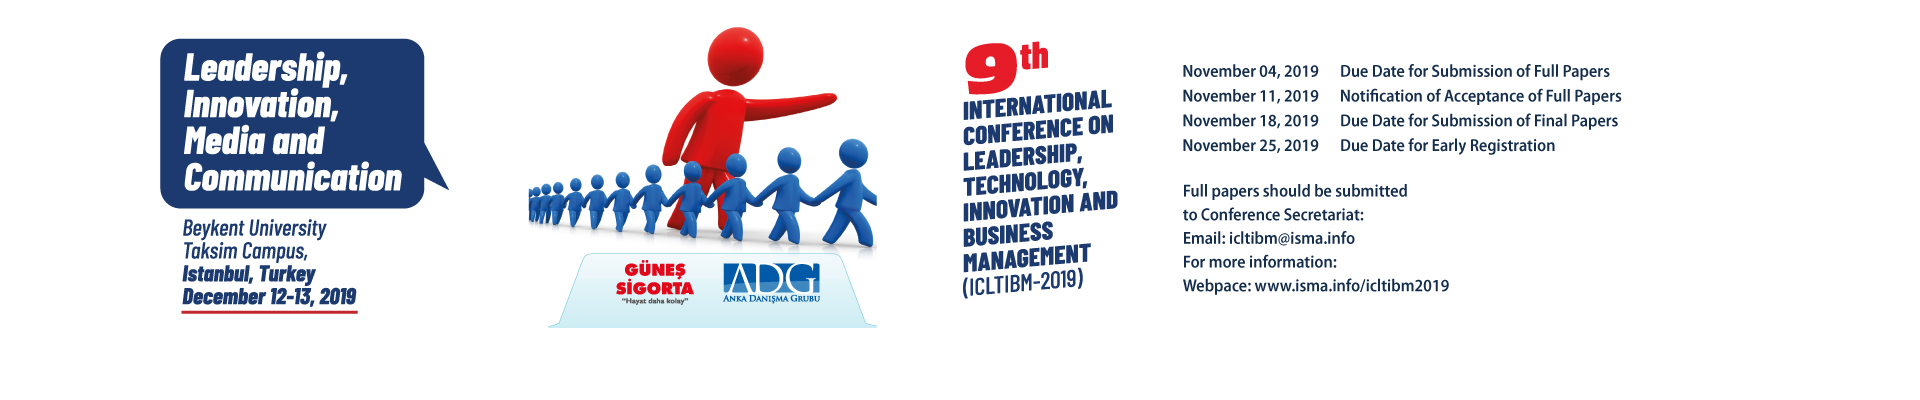 9th International Conference on Leadership, Technology, Innovation and Business Management 2019 (ICLTIBM-2019)